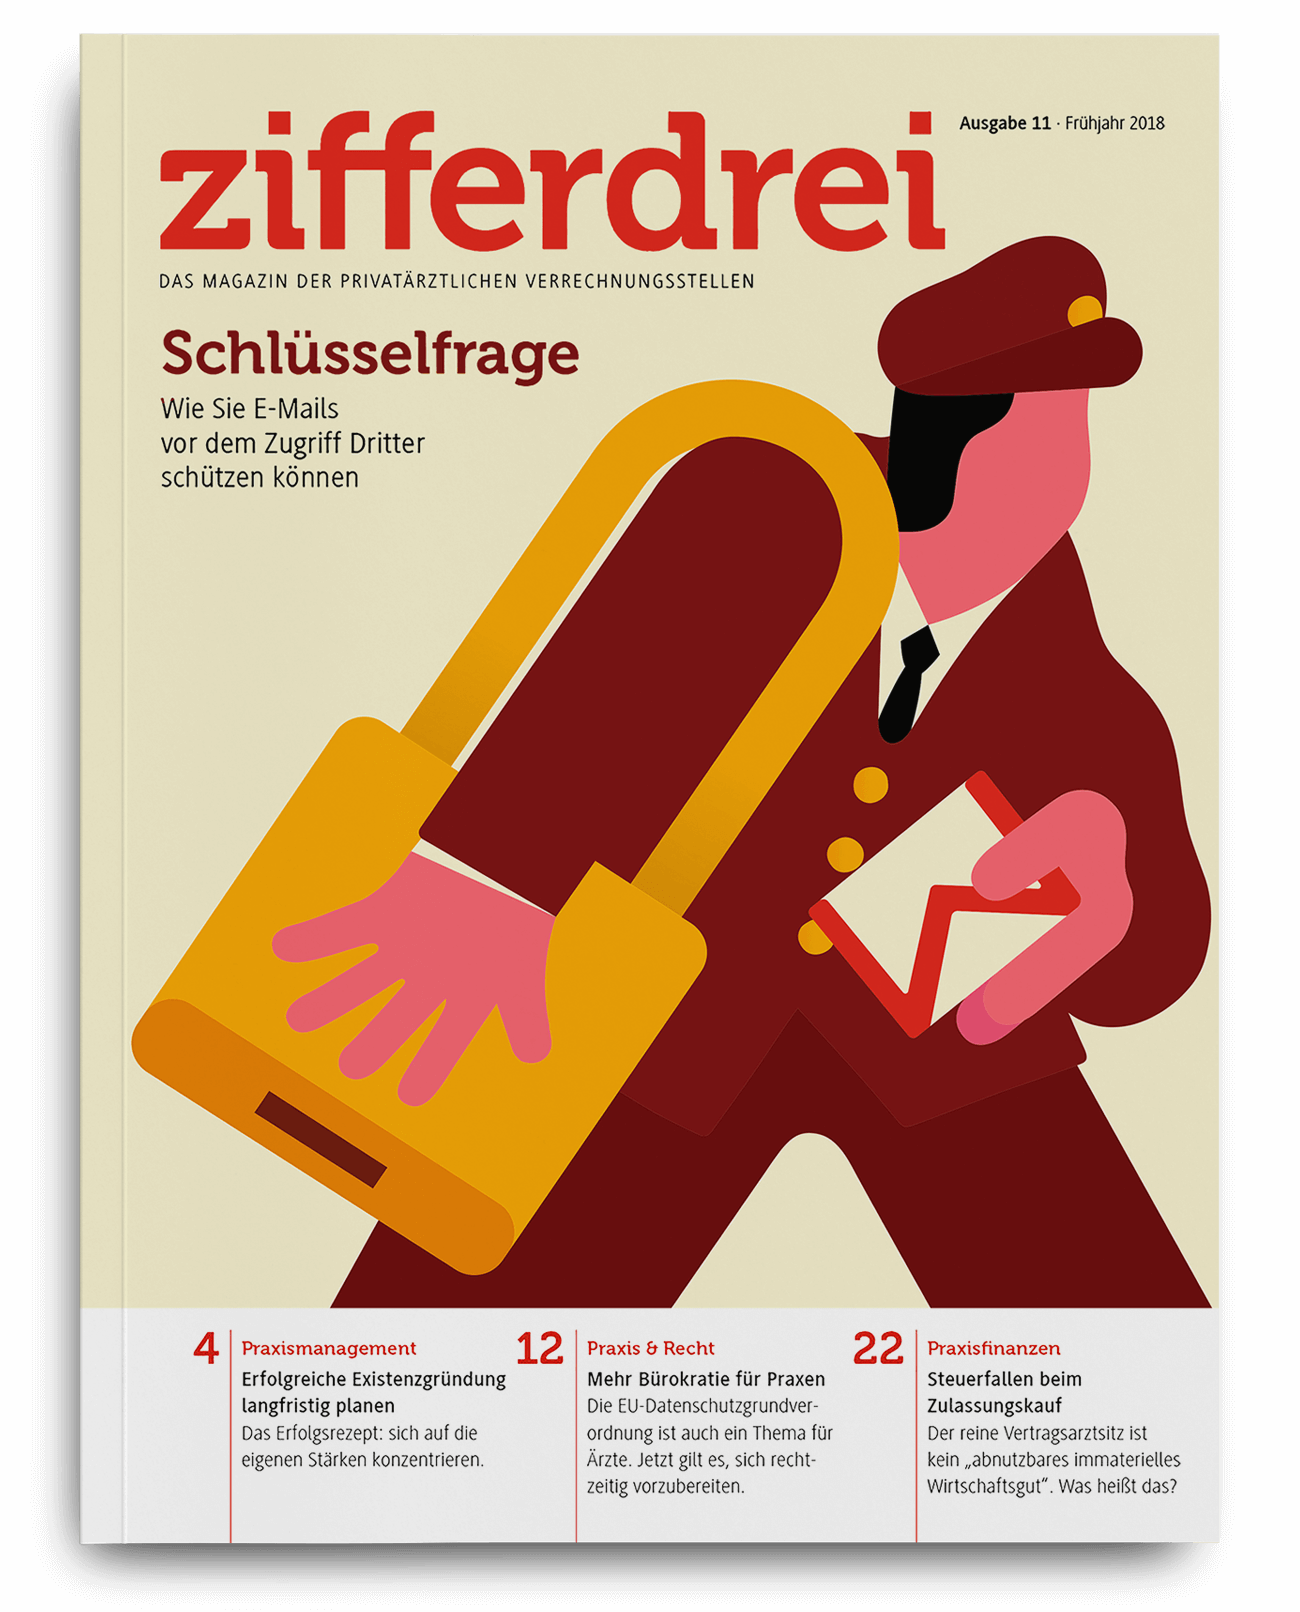 Is your email data in the right hands? Zifferdrei